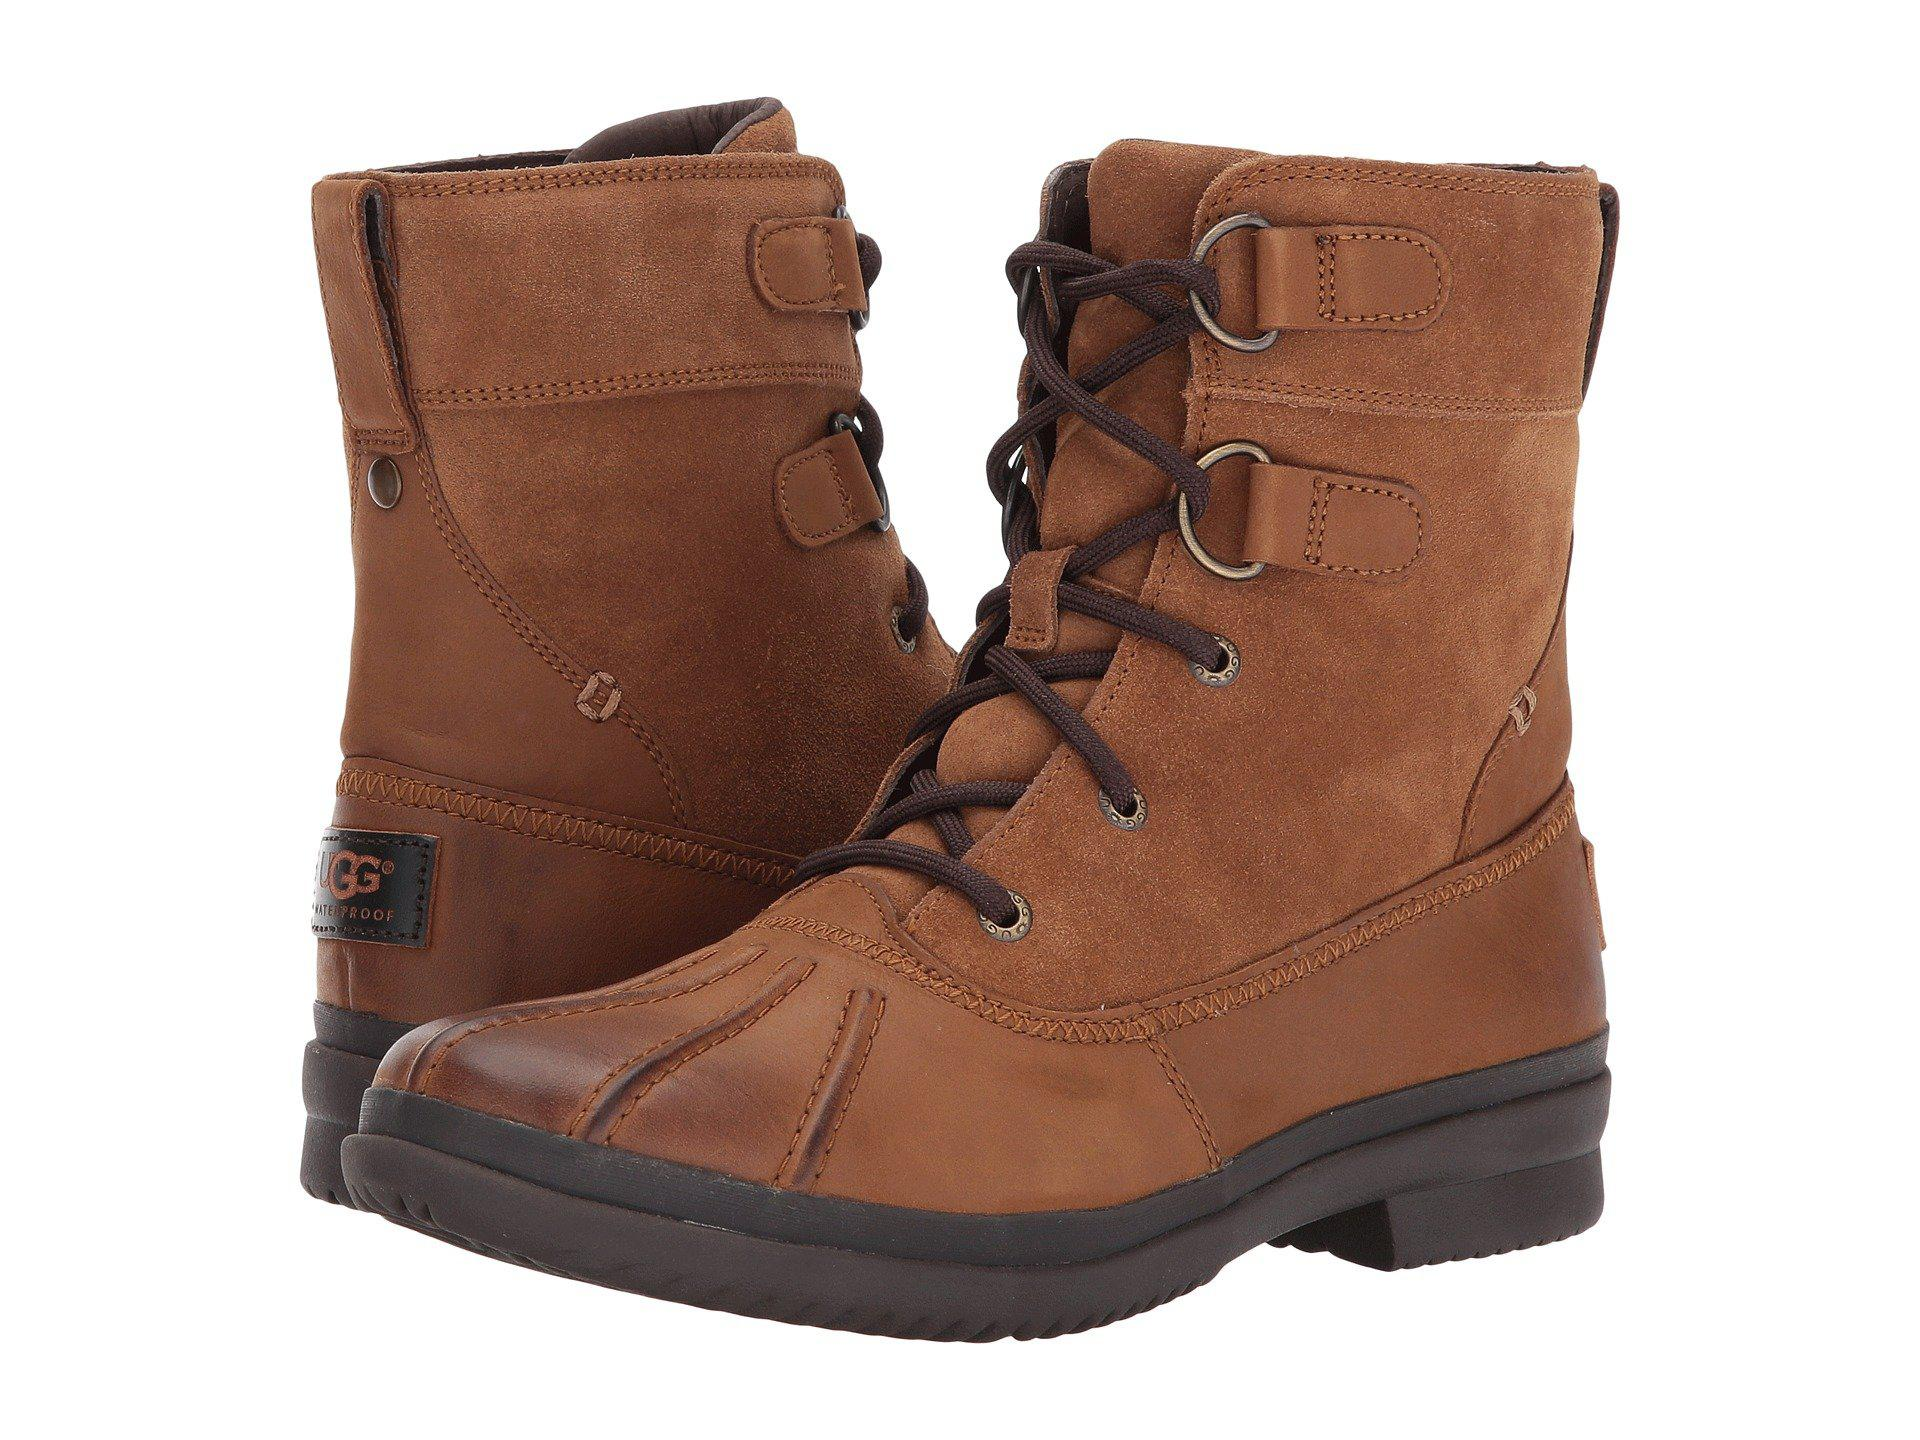 b23cf826b7f Lyst - UGG Azaria (chestnut) Women's Boots in Brown